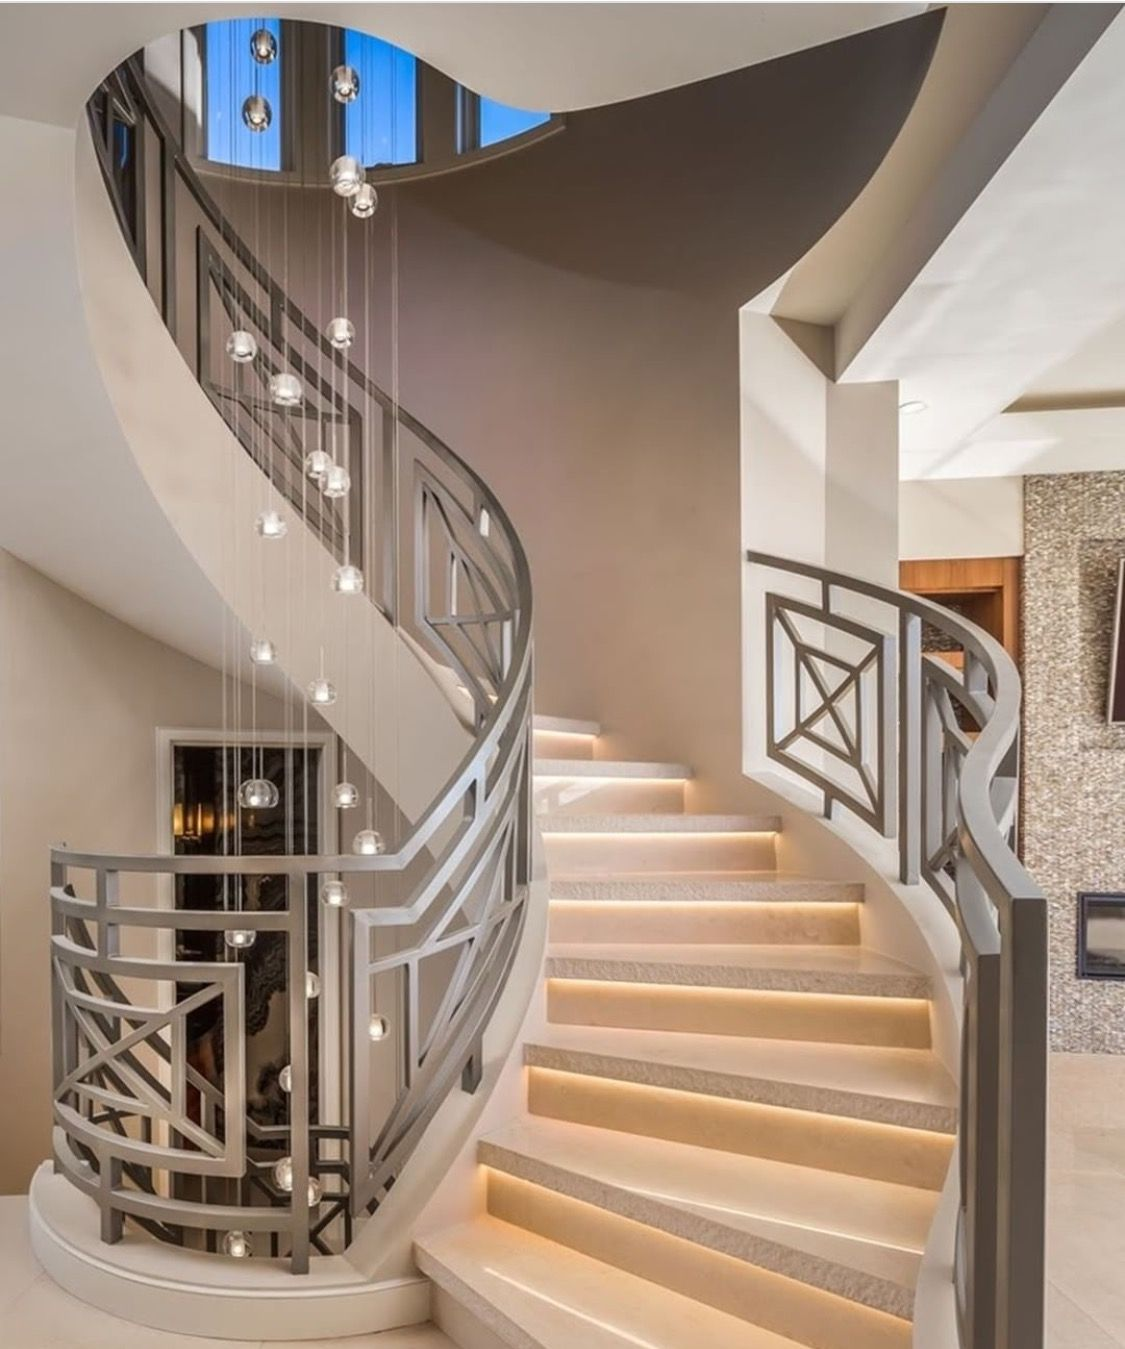 Pin by Valerie Gausche on Home Perfection | Home stairs ...